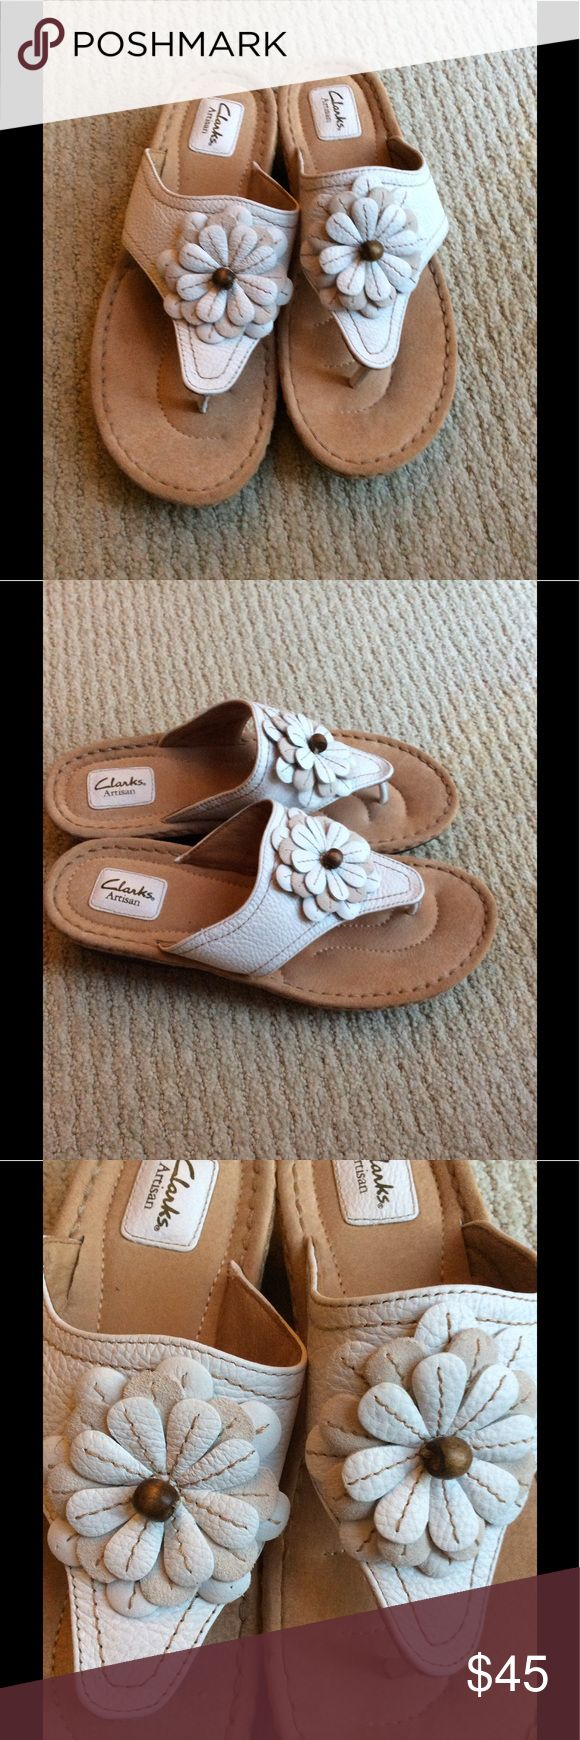 Clarks sandals New sandals no tags no stains and no signs of wear Clarks Shoes Sandals